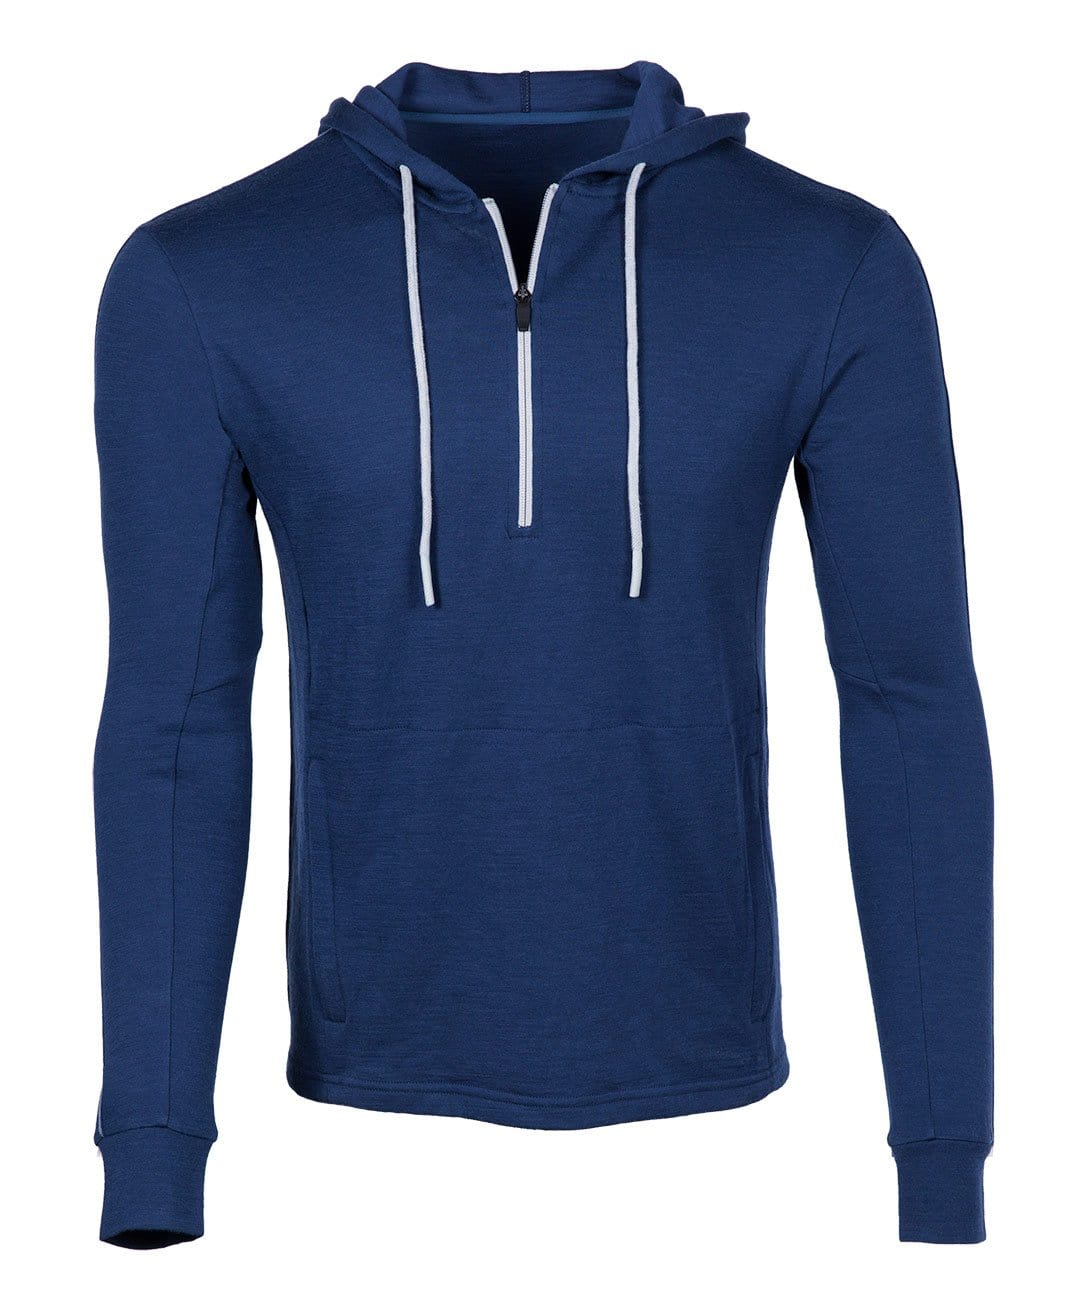 989ebb96996 Men's Trailhead Bamboo-Merino Wool Hoodie | SP